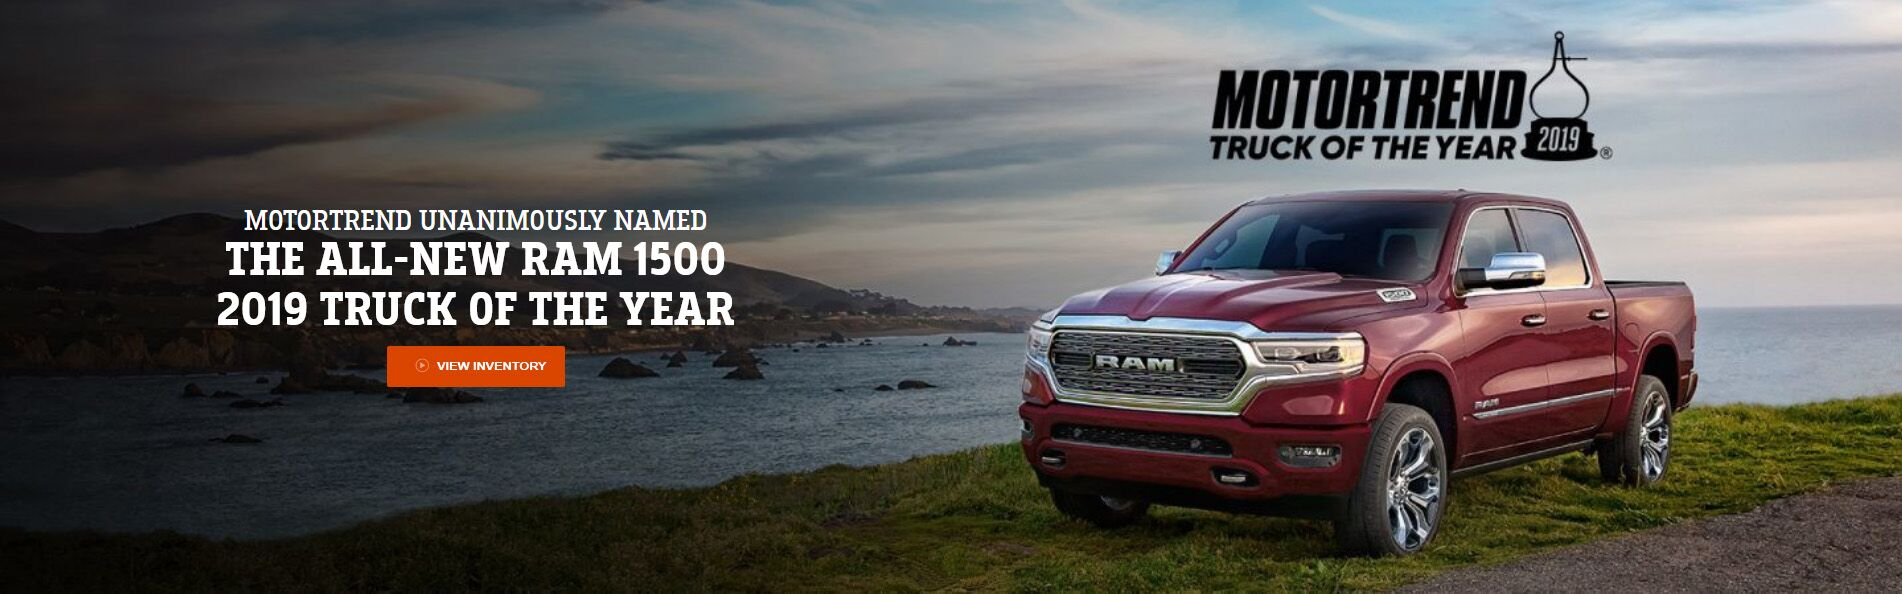 2019 Ram 1500 Motor Trend's Truck of the Year